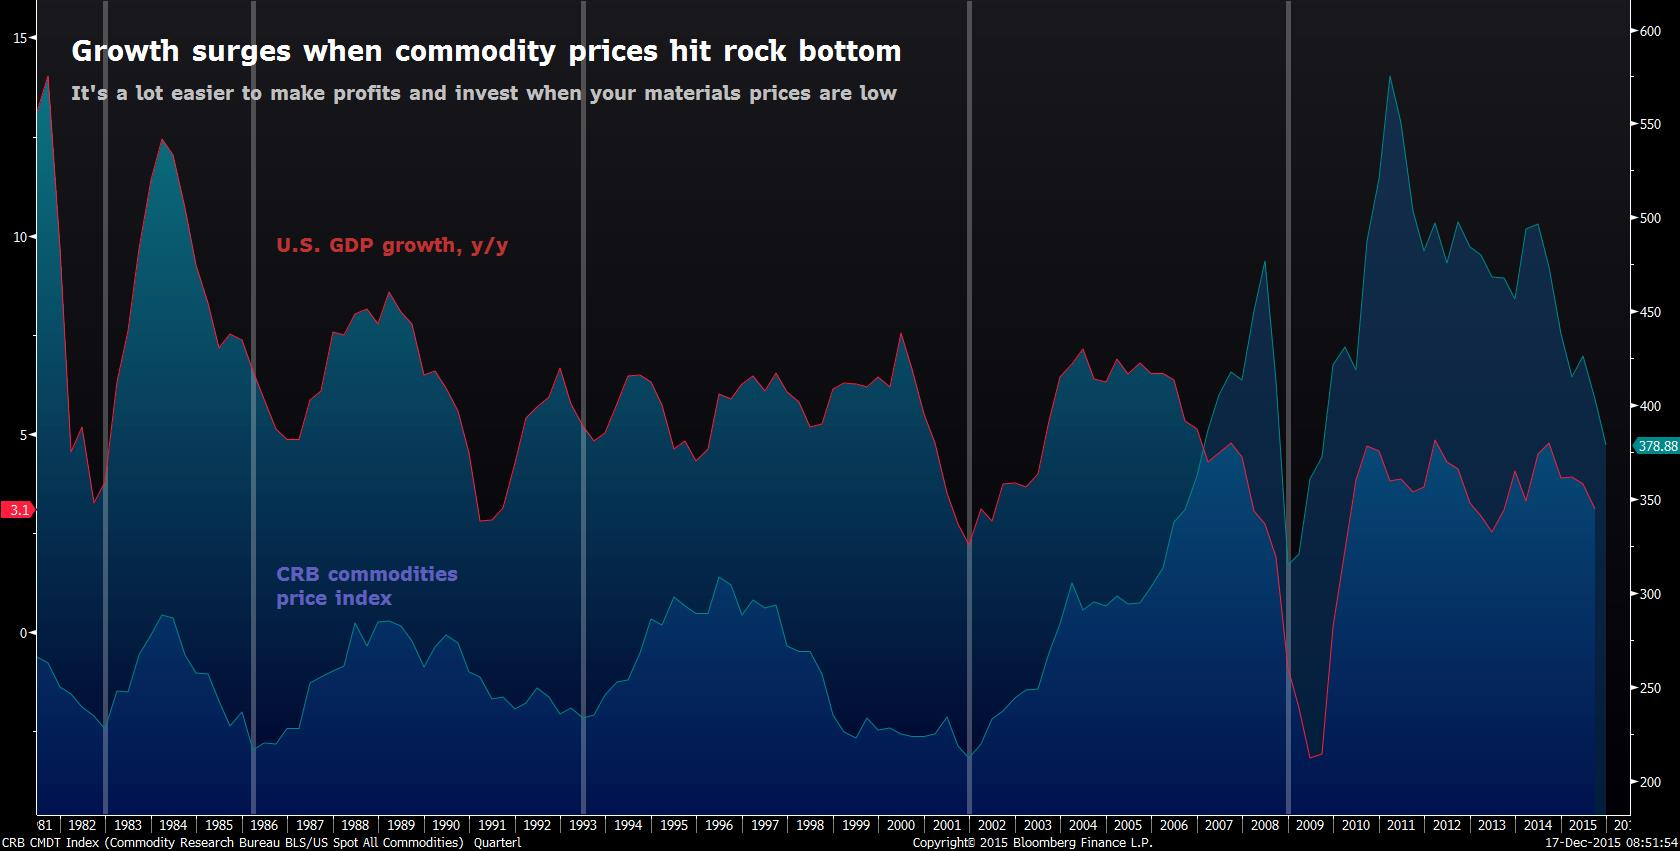 Commodities prices and GDP